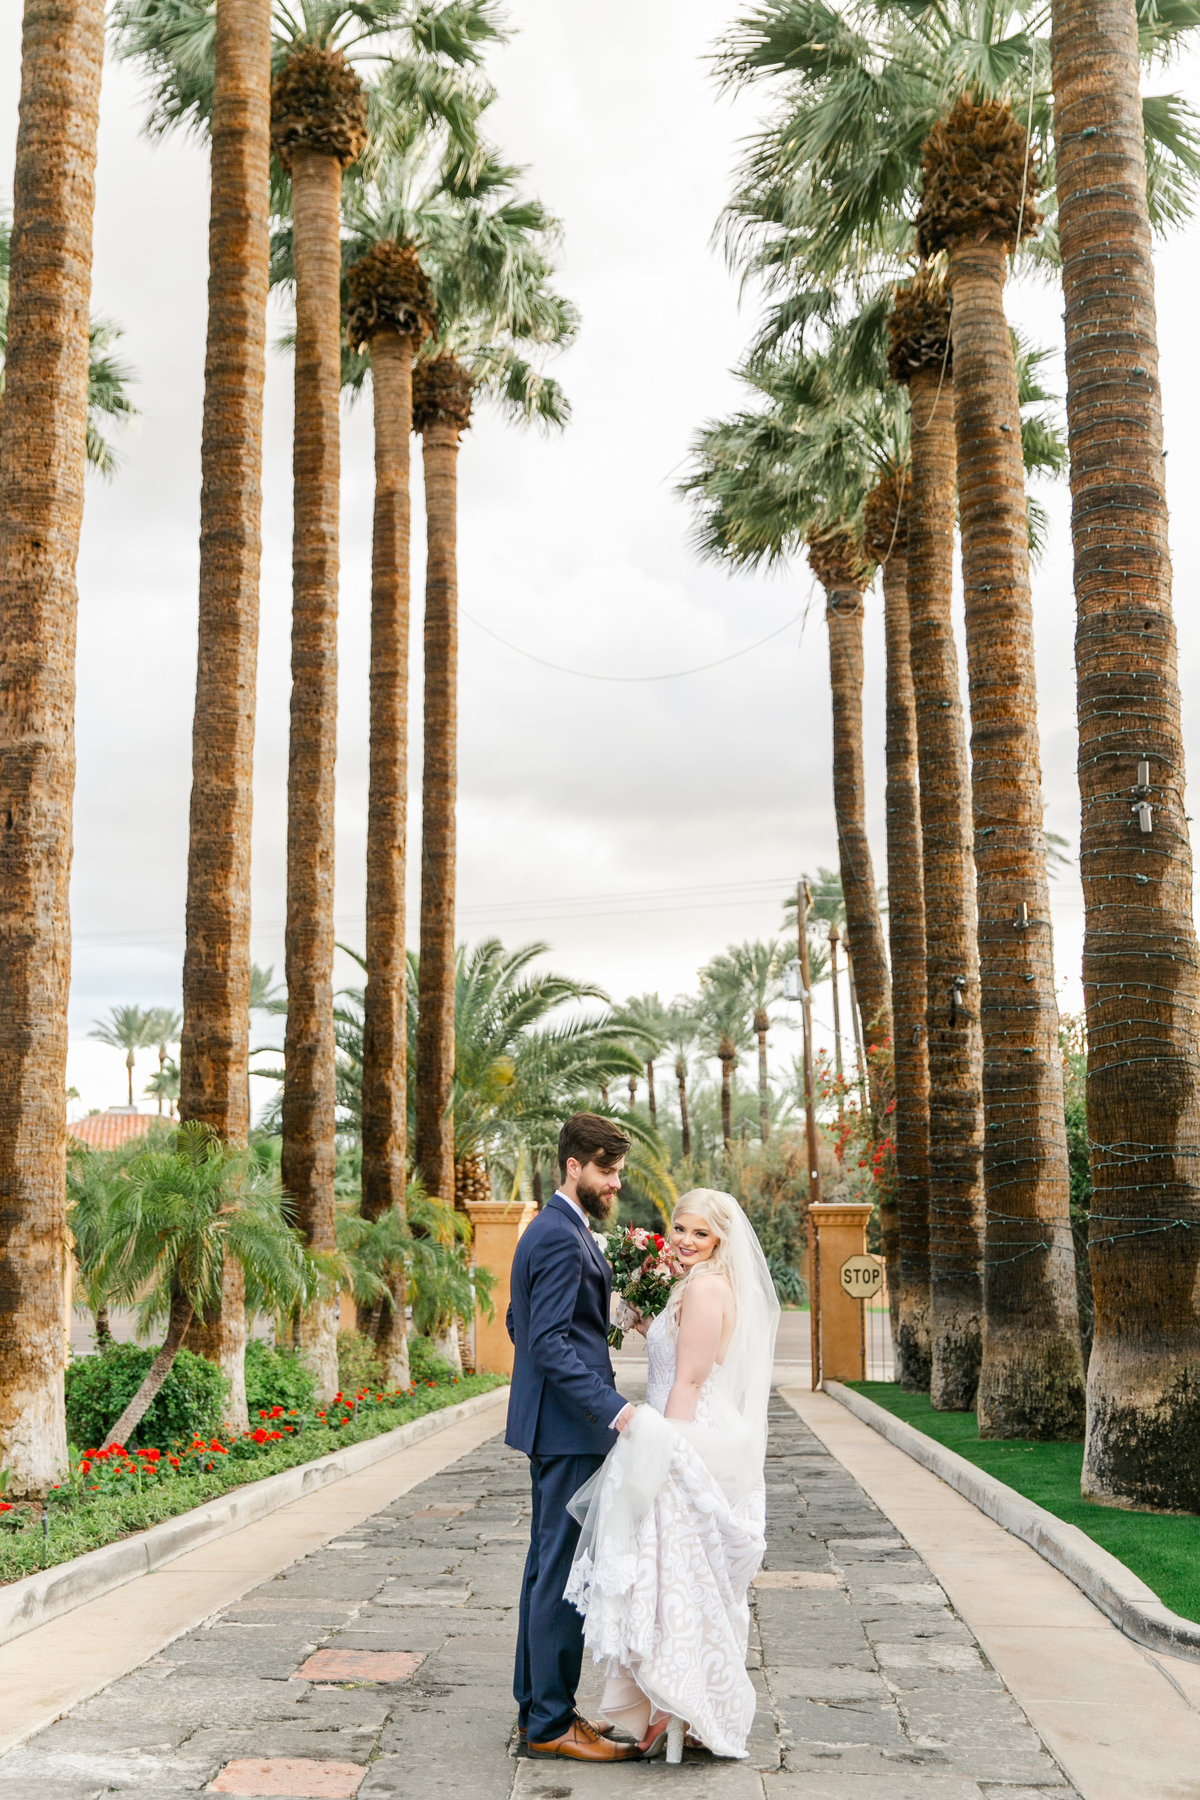 Karlie Colleen Photography - The Royal Palms Wedding - Some Like It Classic - Alex & Sam-575